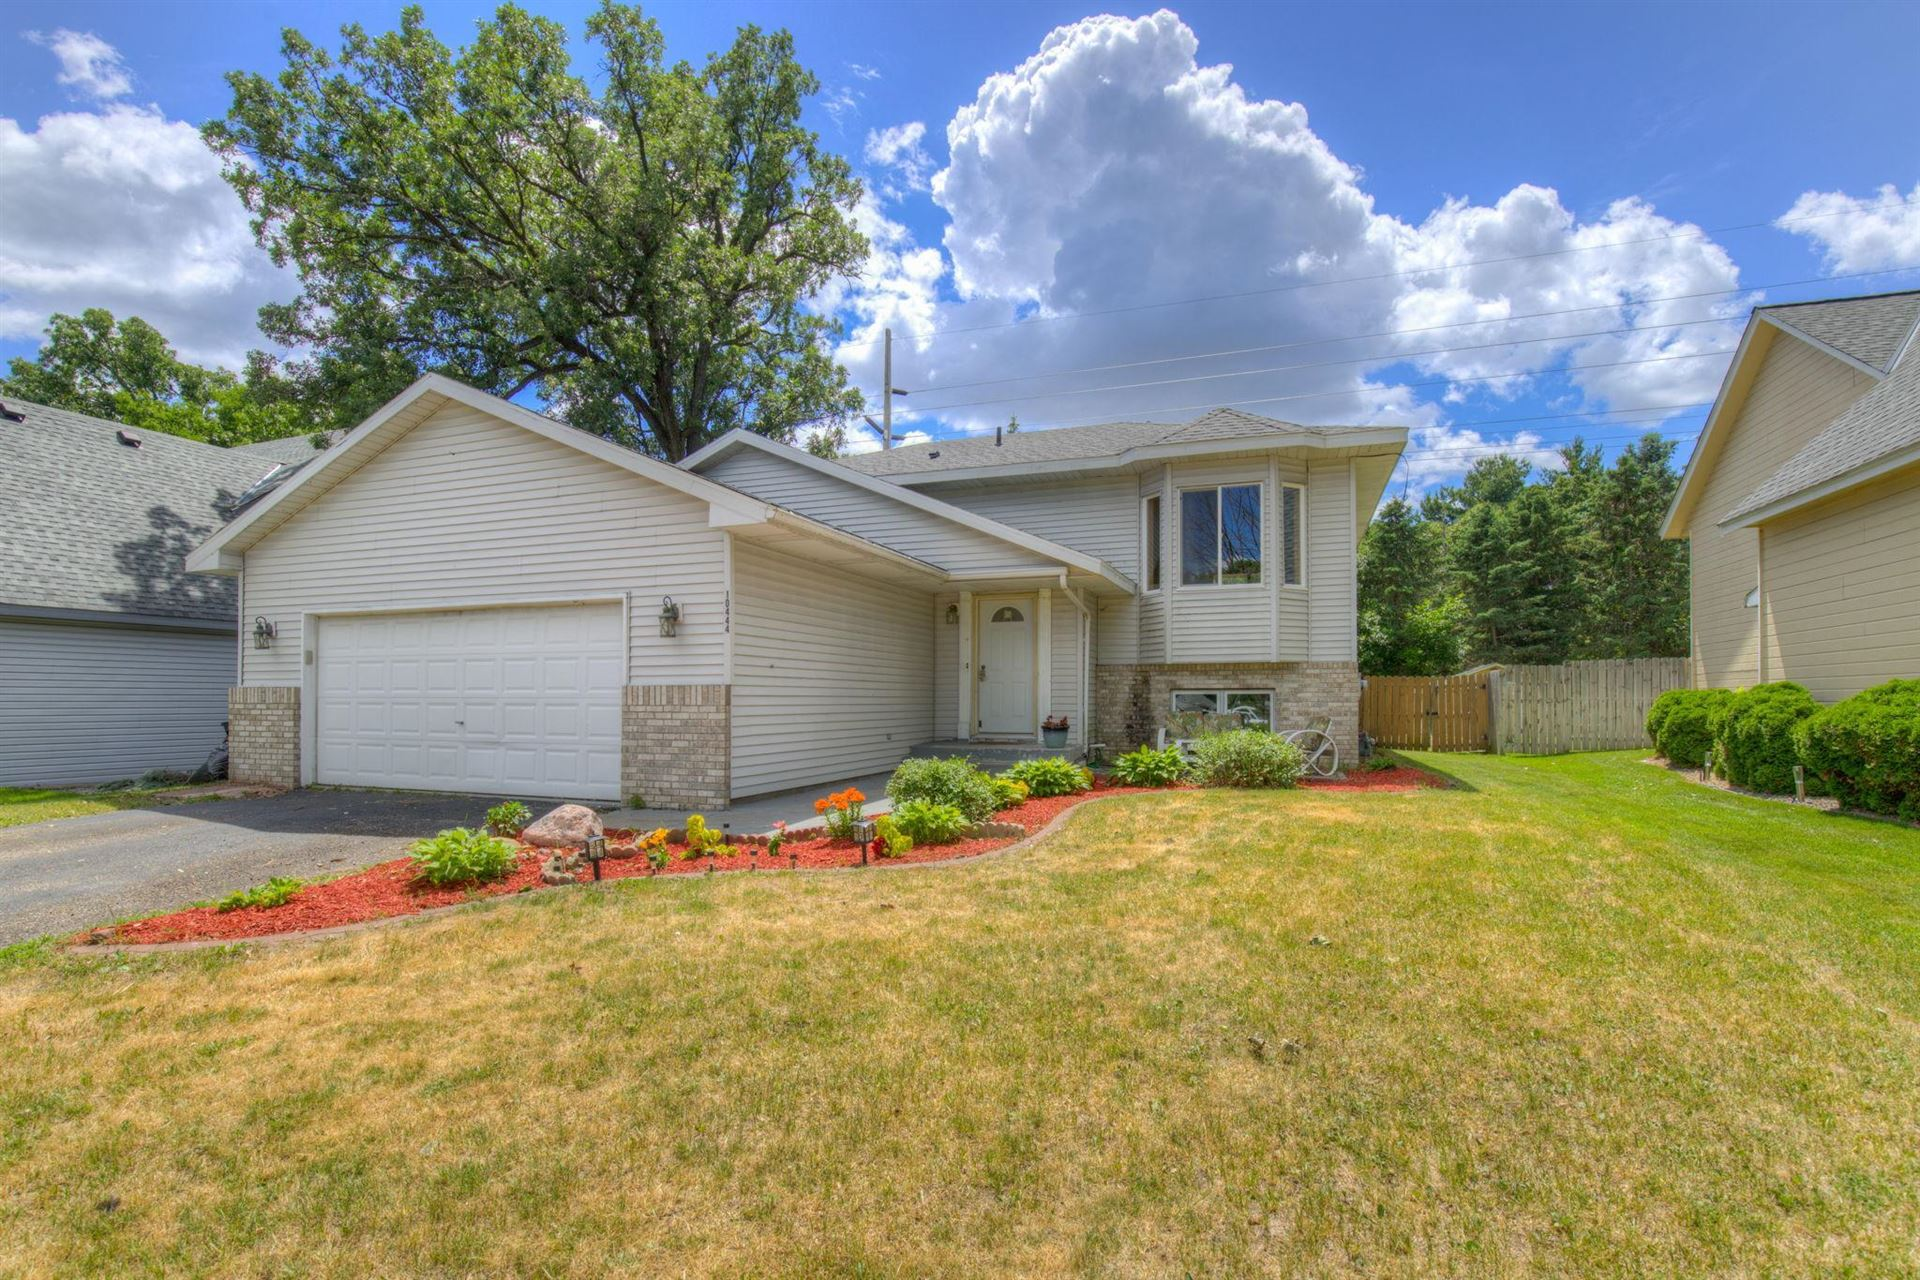 10444 Eagle Street NW, Coon Rapids, MN 55433 - MLS#: 5639020